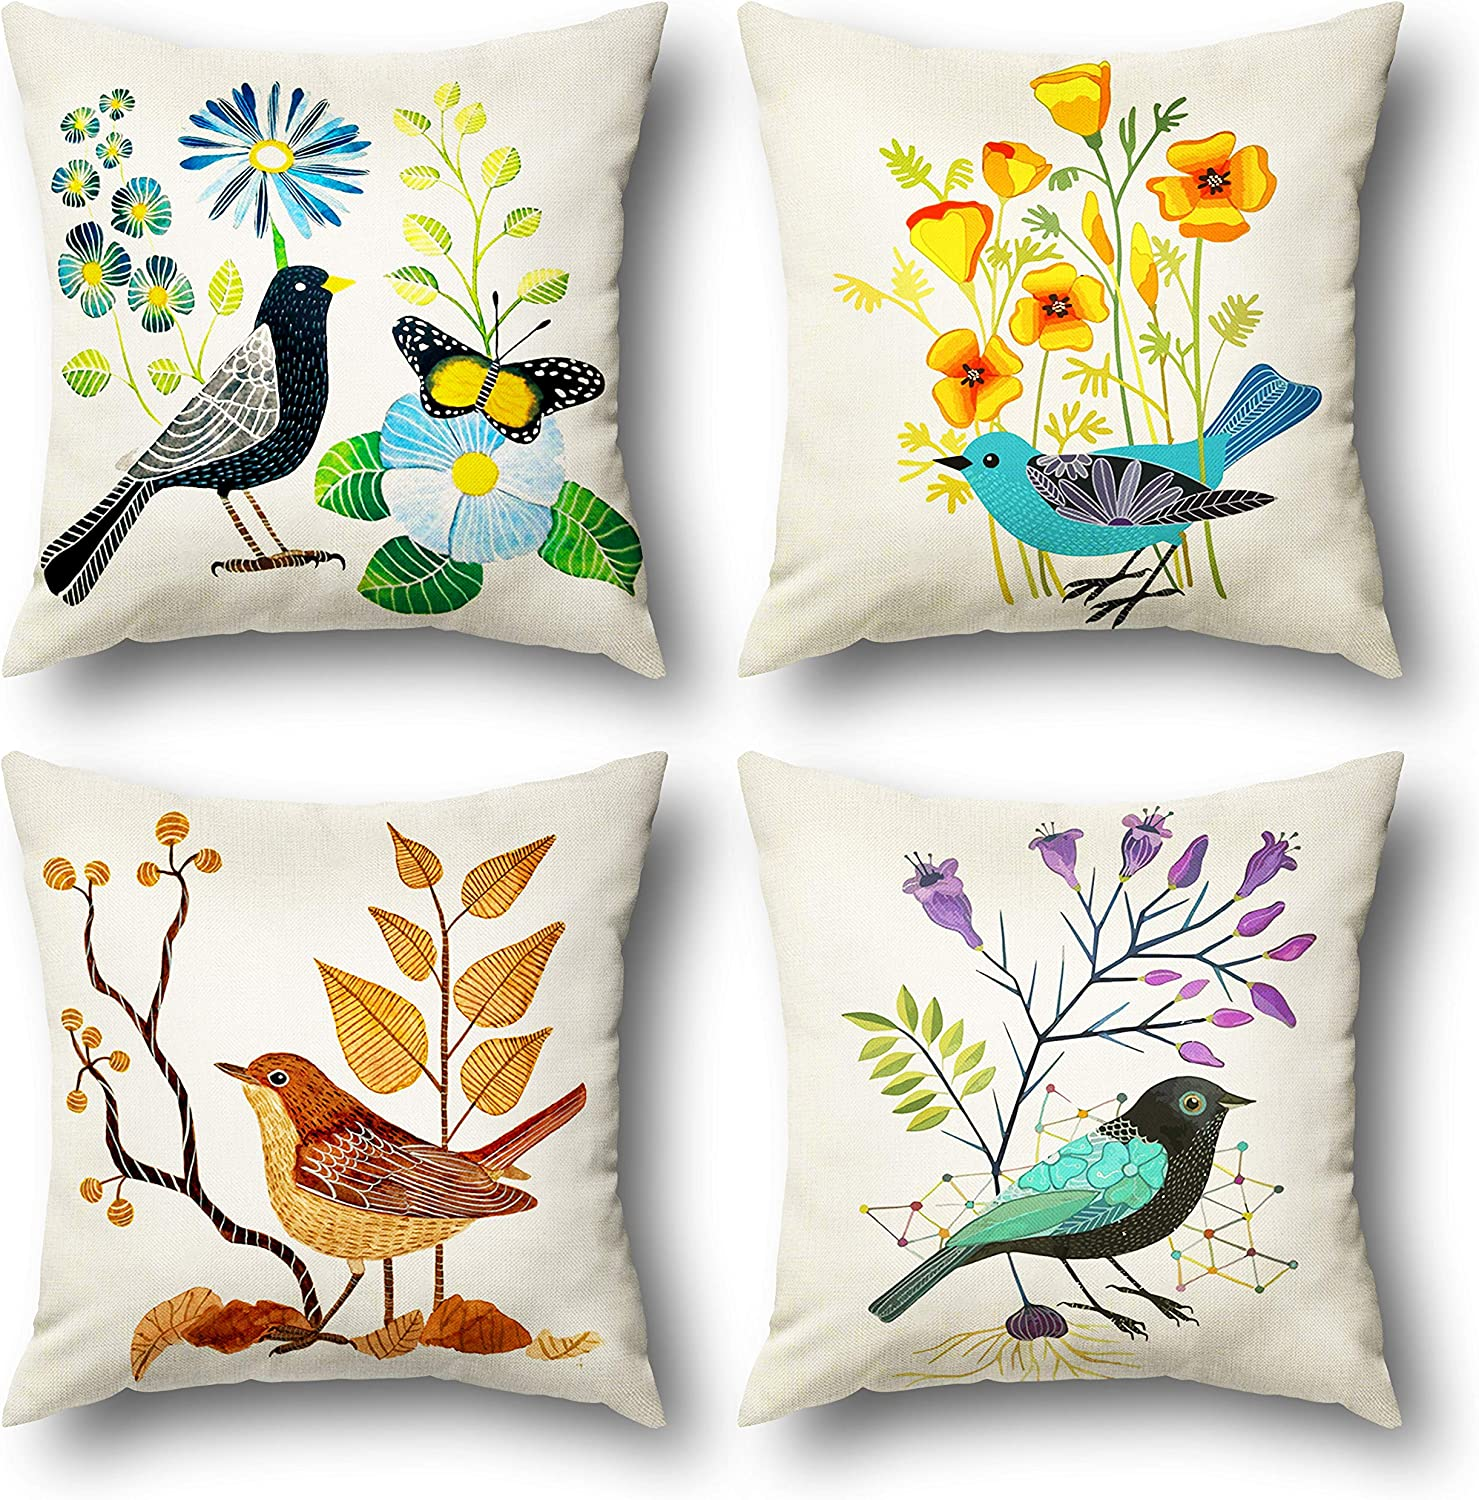 50% Off Coupon – Pillow Covers 18×18 Set of 4 for Spring